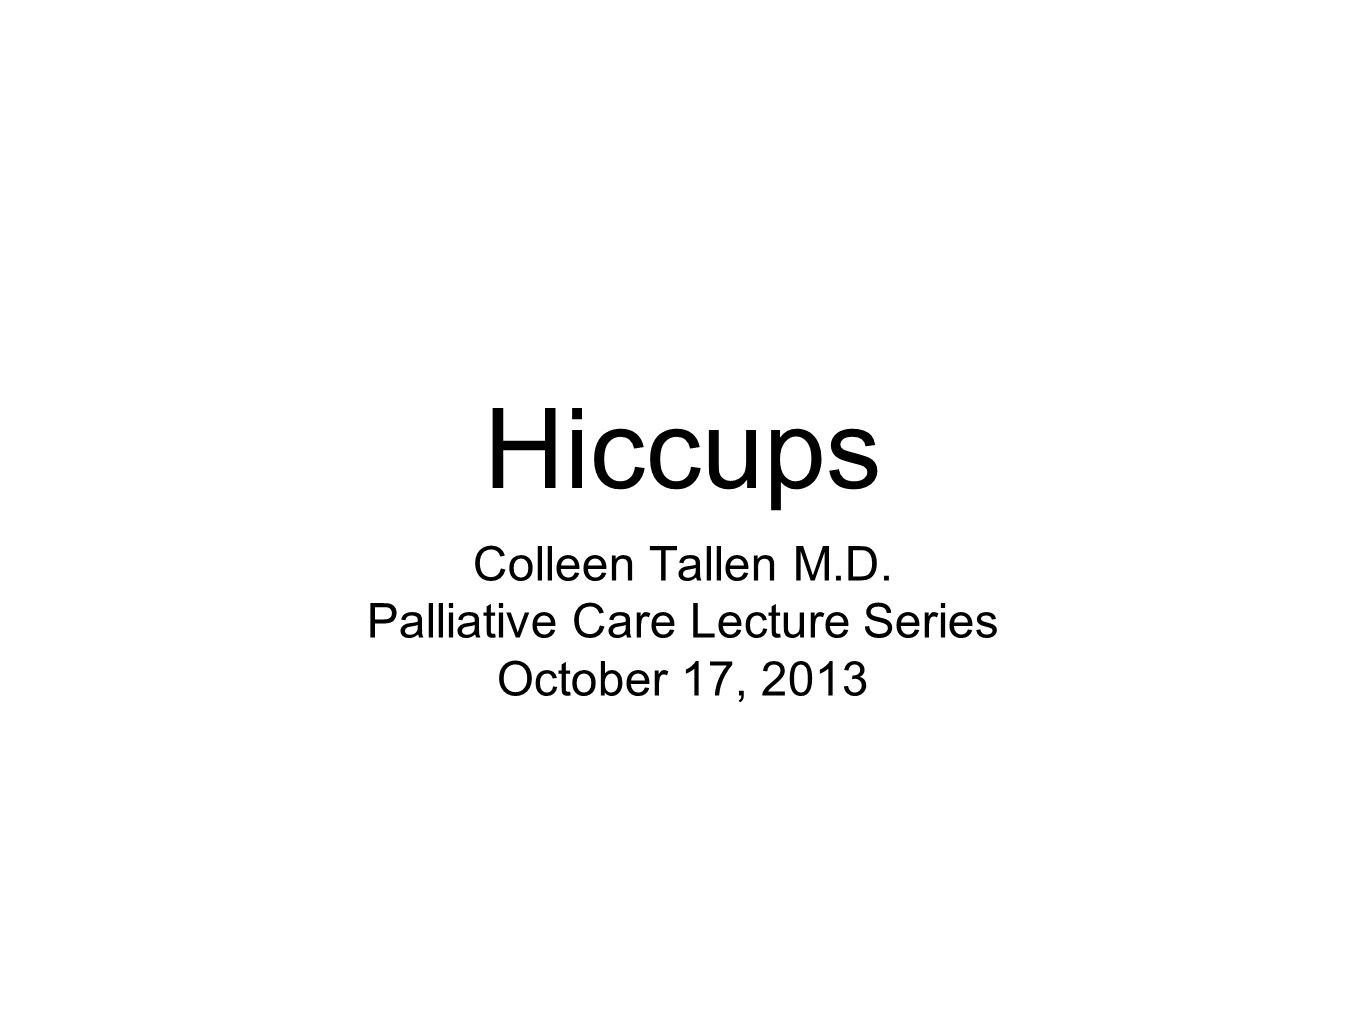 Hiccups Colleen Tallen M.D. Palliative Care Lecture Series October 17, 2013